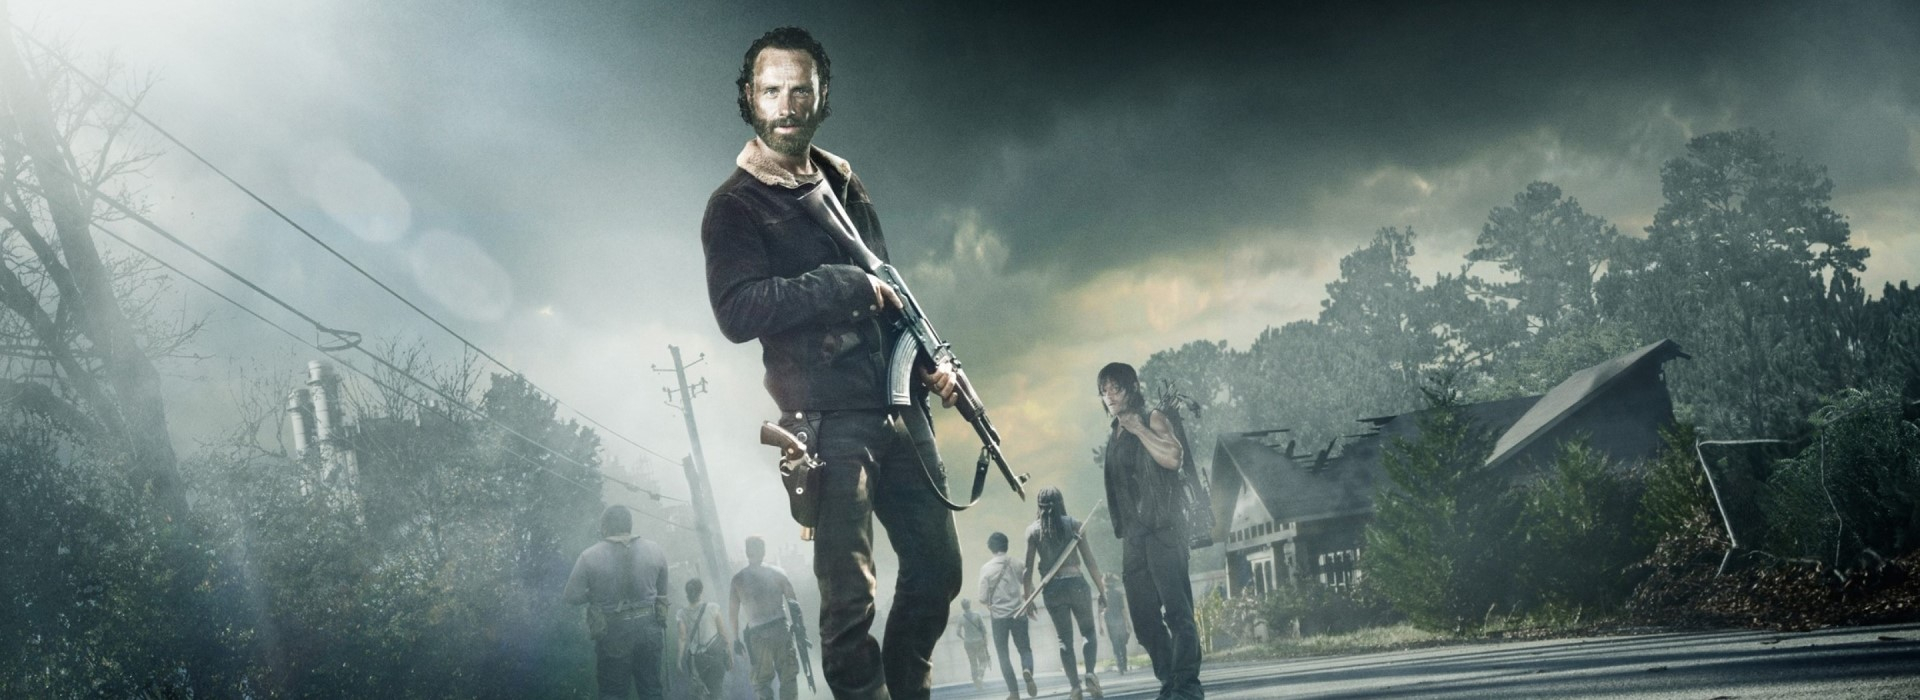 The Walking Dead Season 5 720p cover